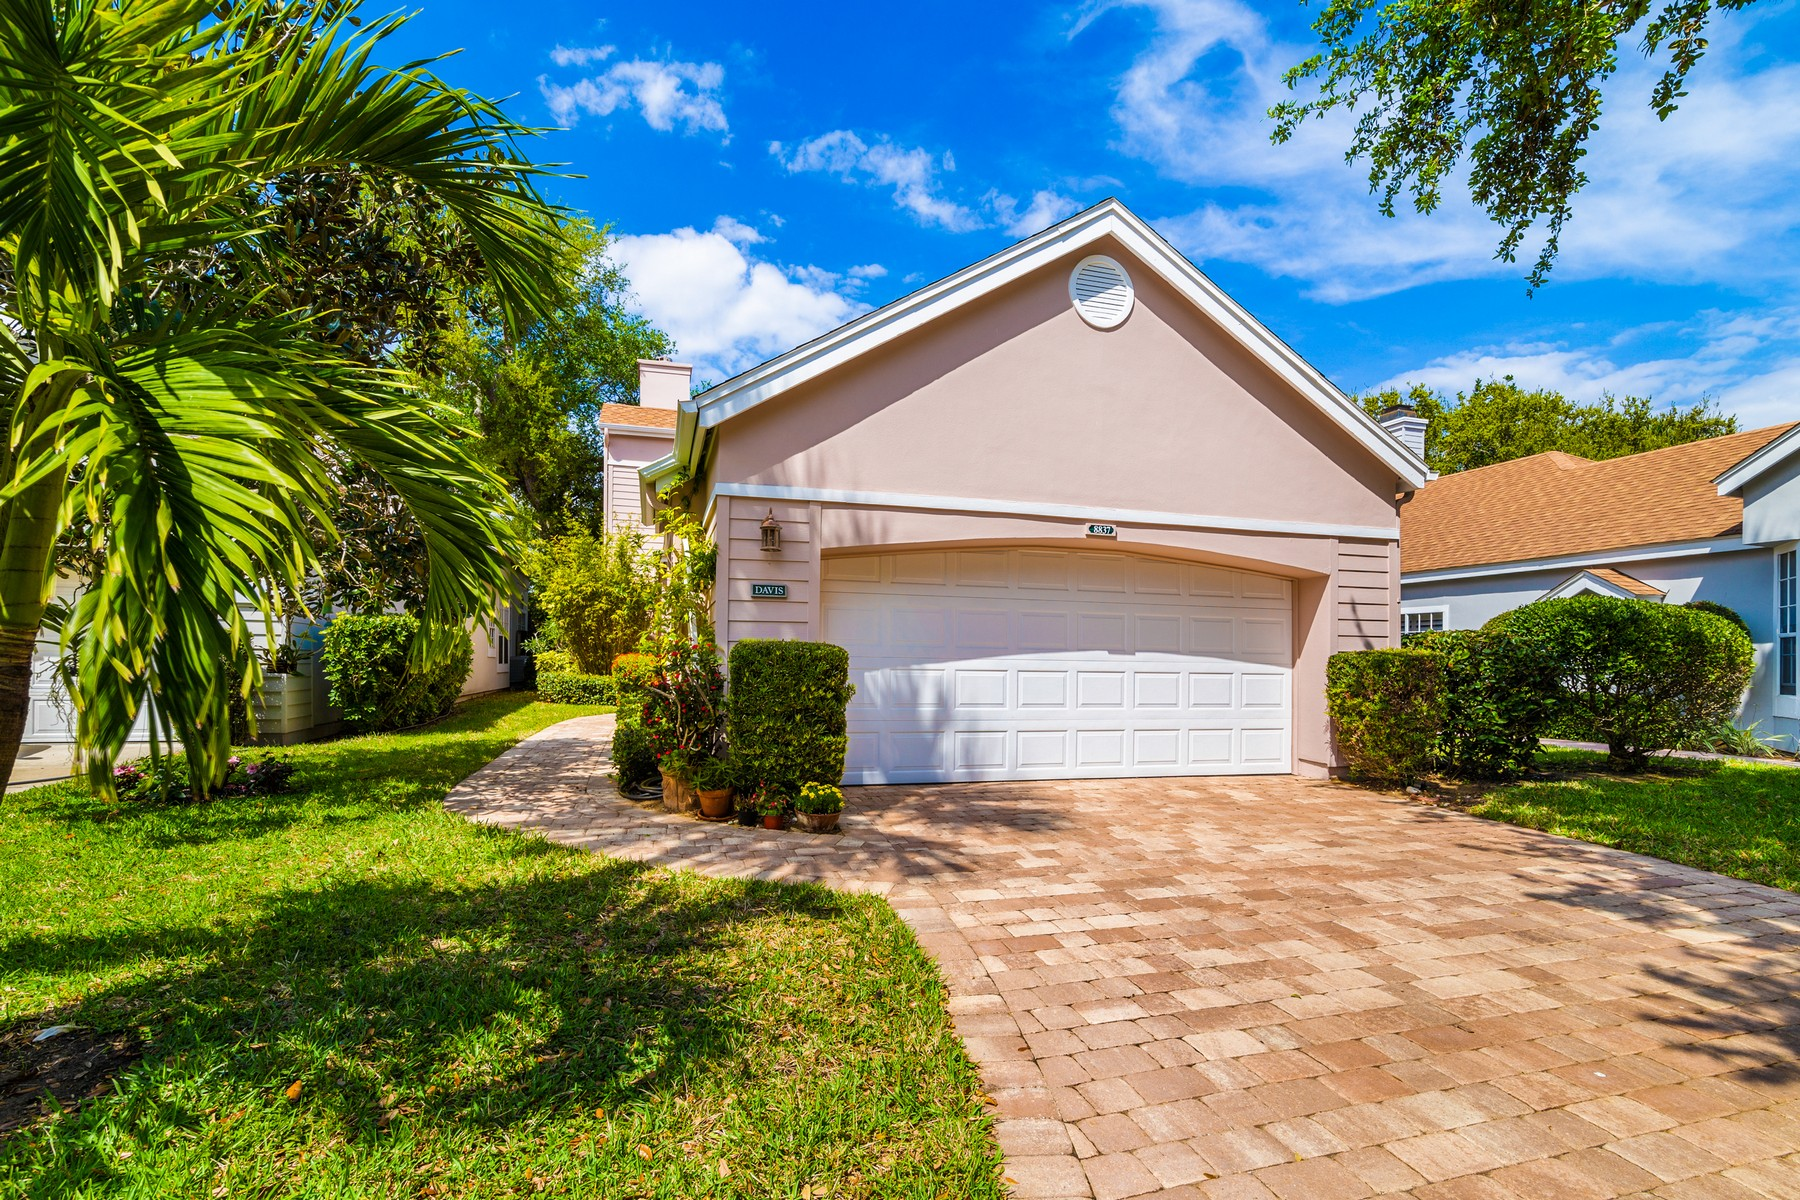 Single Family Homes for Sale at SEA OAKS RIVER HOME 8837 Lakeside Circle Vero Beach, Florida 32963 United States